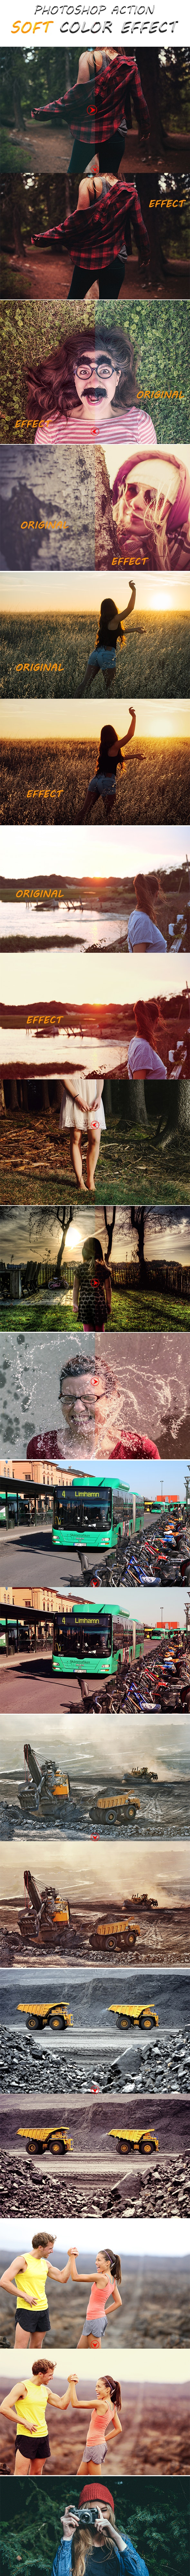 Photoshop Action Soft Color Effect vol 02 - Photo Effects Actions